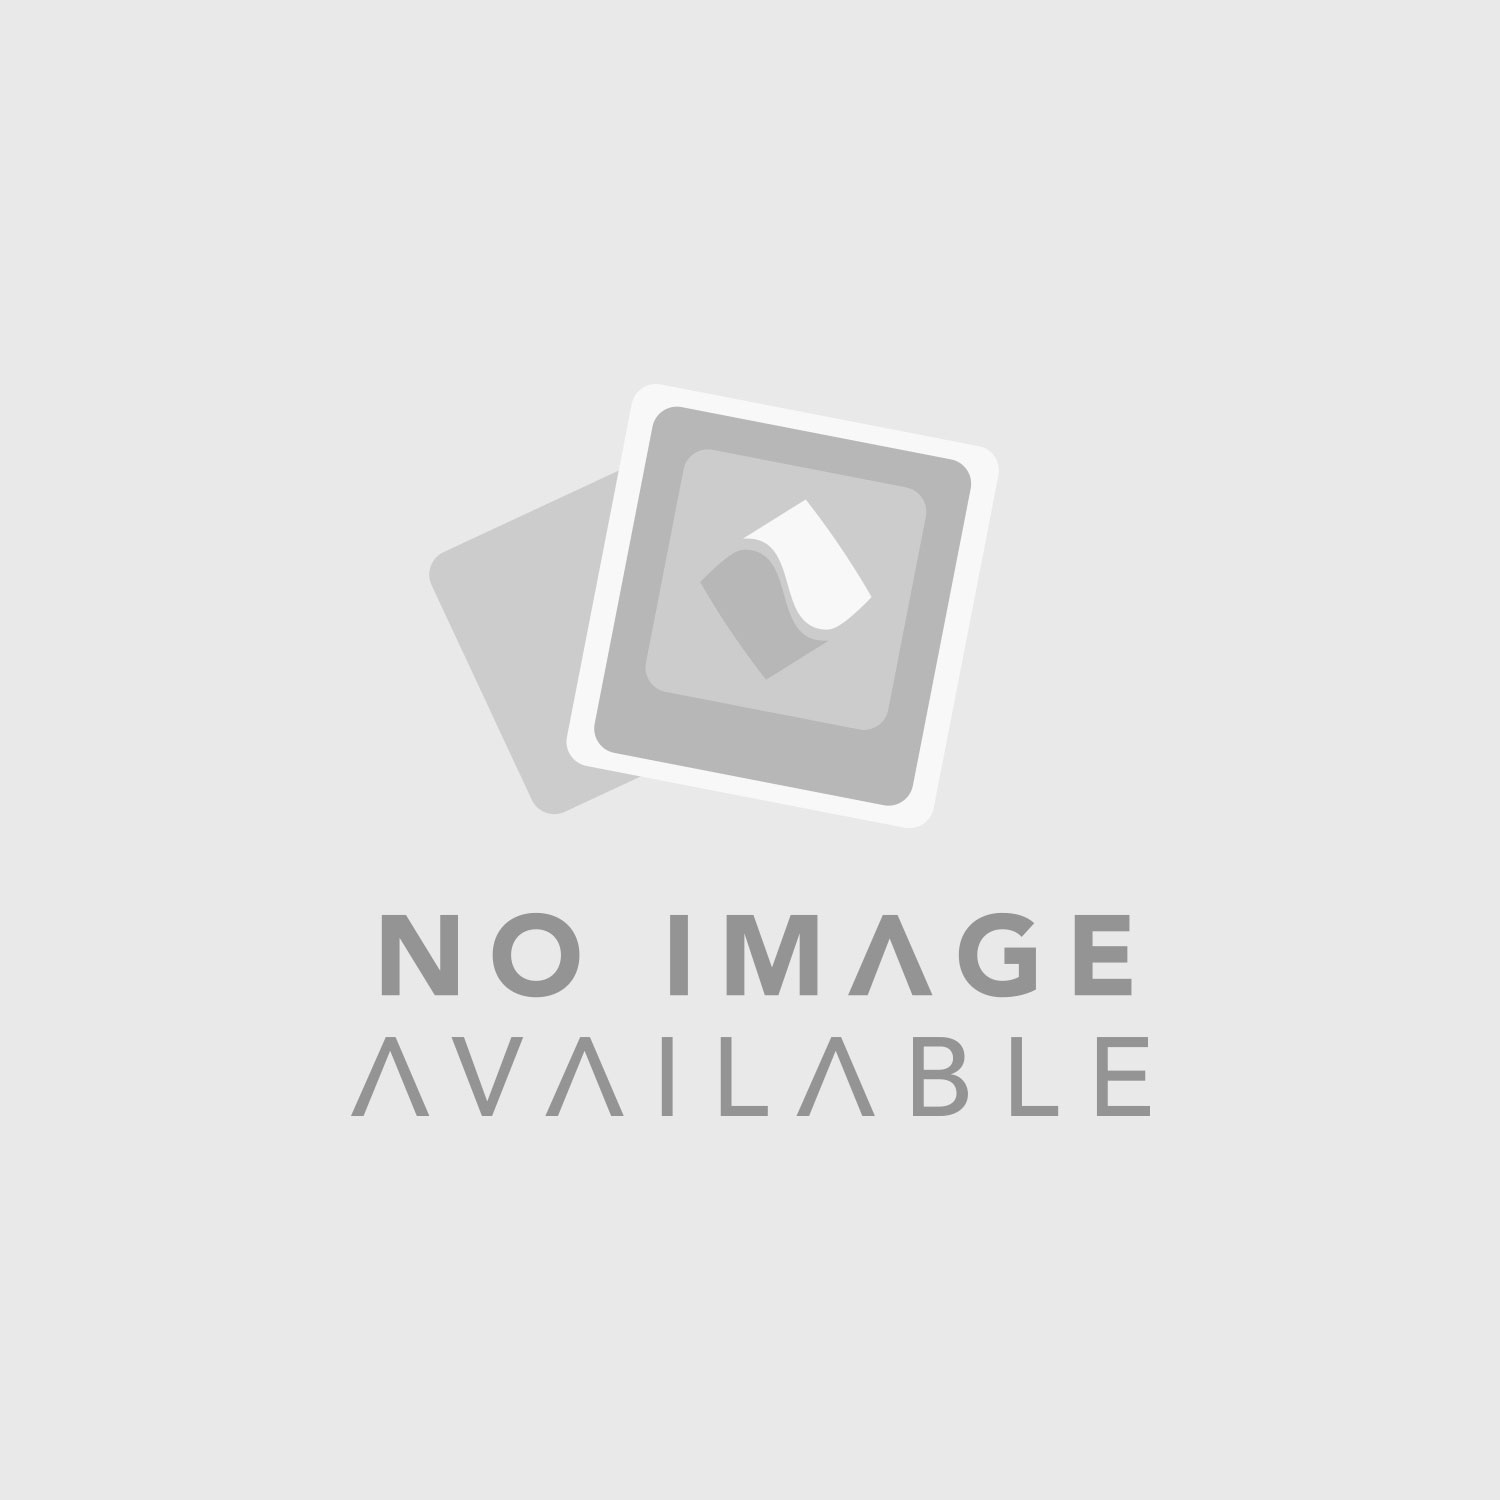 Allen & Heath Xone:92 Professional DJ Mixer with Linear Faders